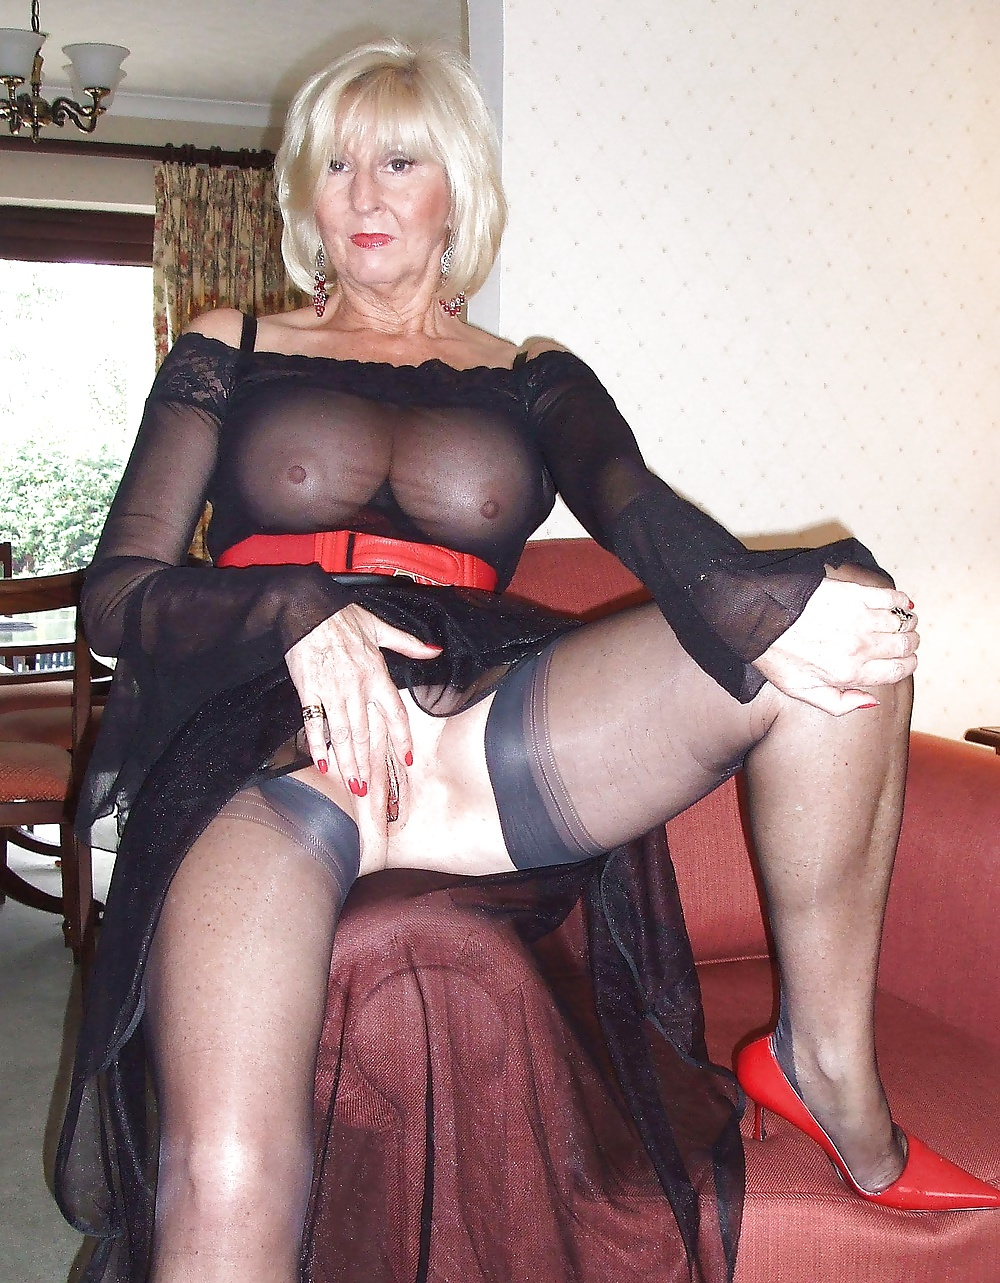 Free thumbs granny pussy whore stockings sign for young